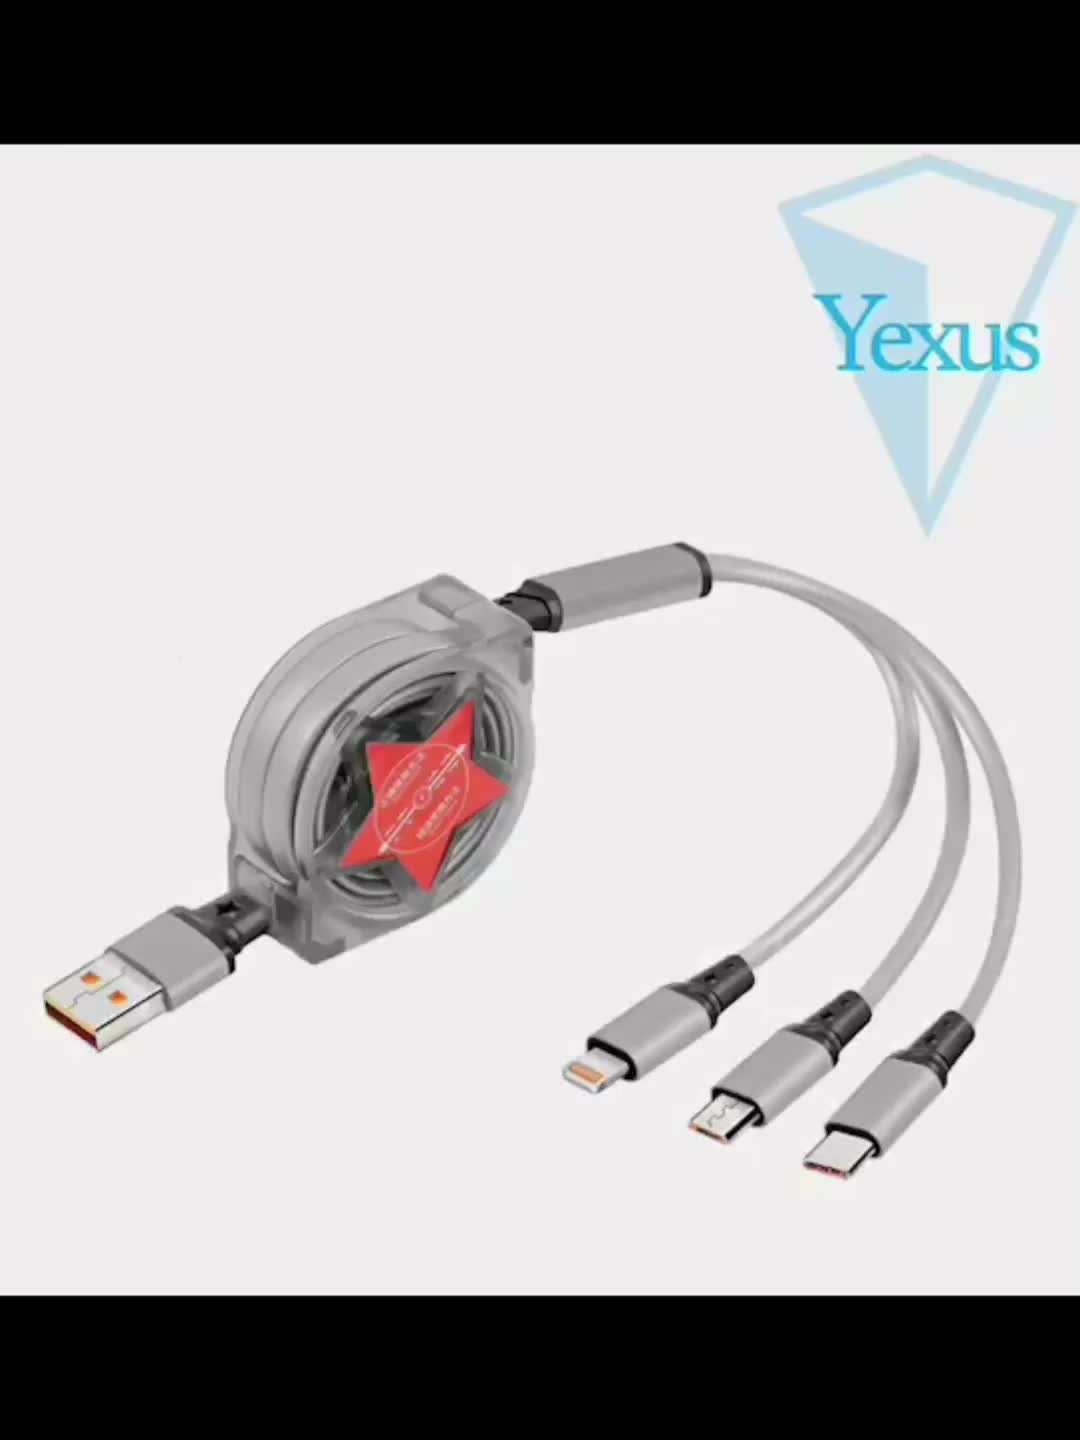 Direct Factory Supplier 3 in 1 Cable Usb for Charging